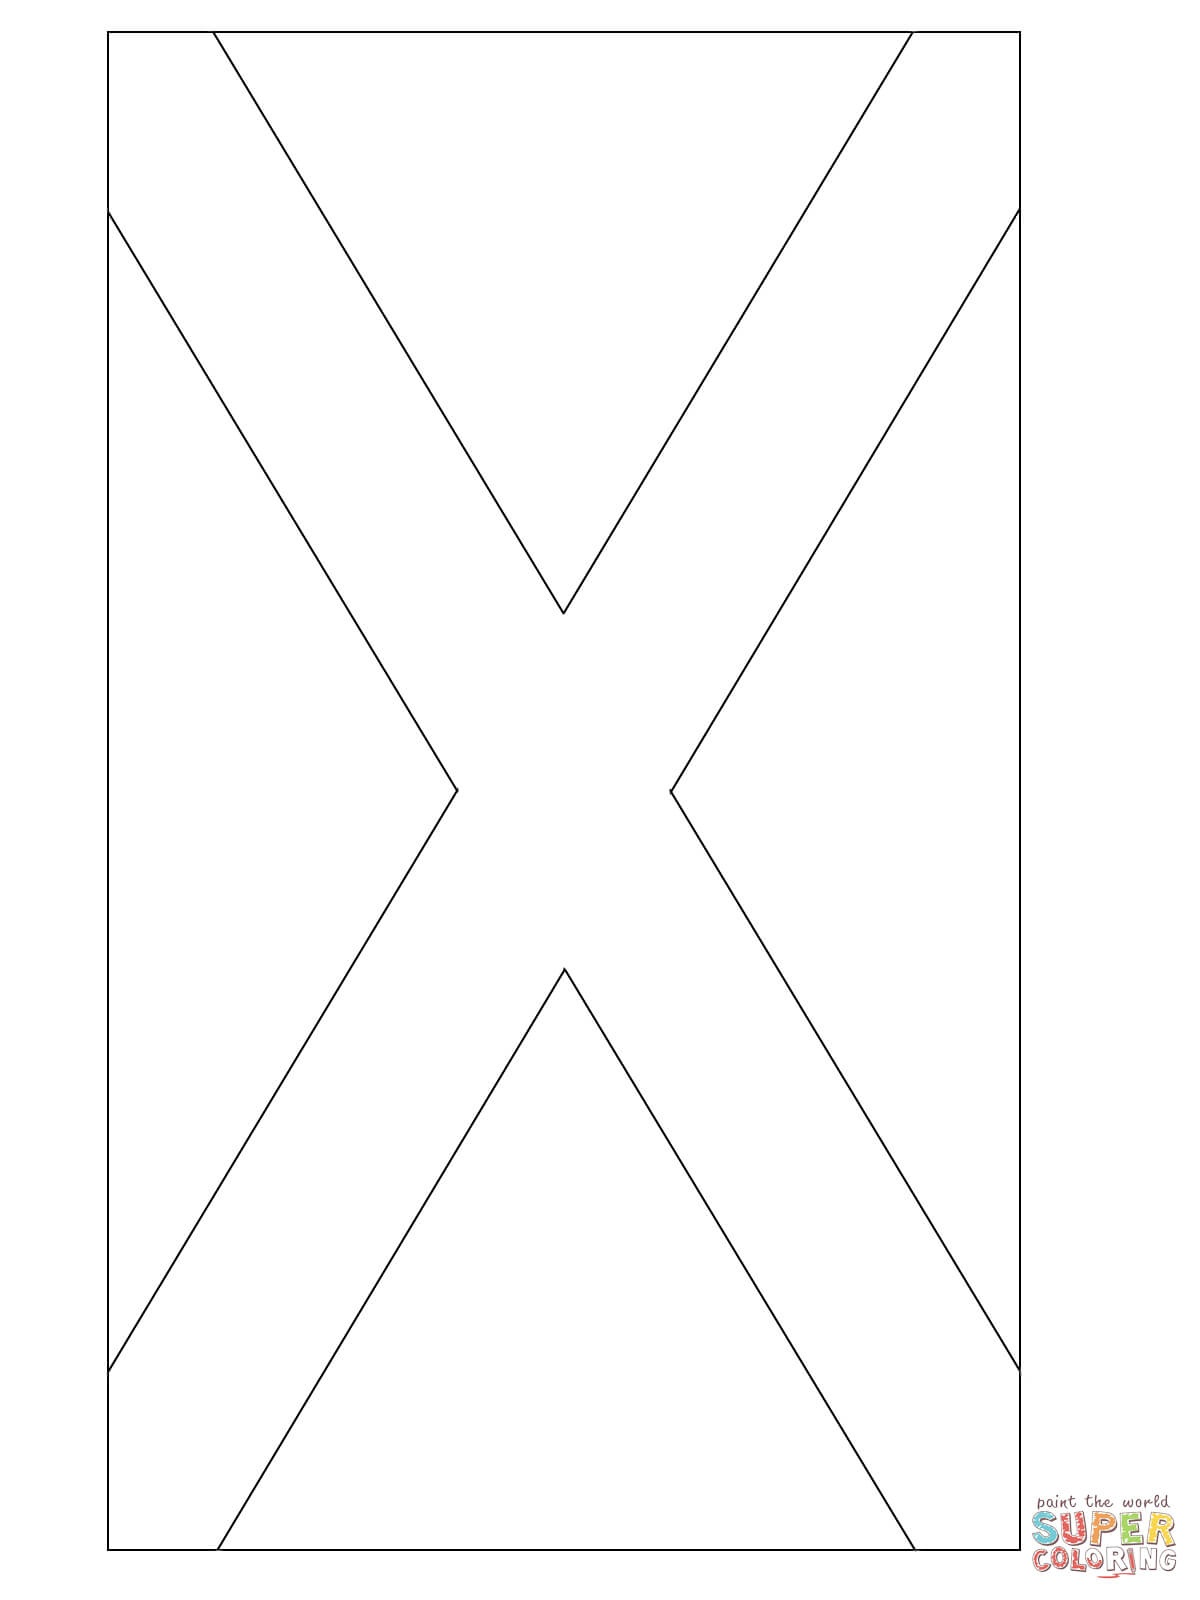 Flag Of Scotland Coloring Page | Free Printable Coloring Pages - Free Printable Scottish Flag